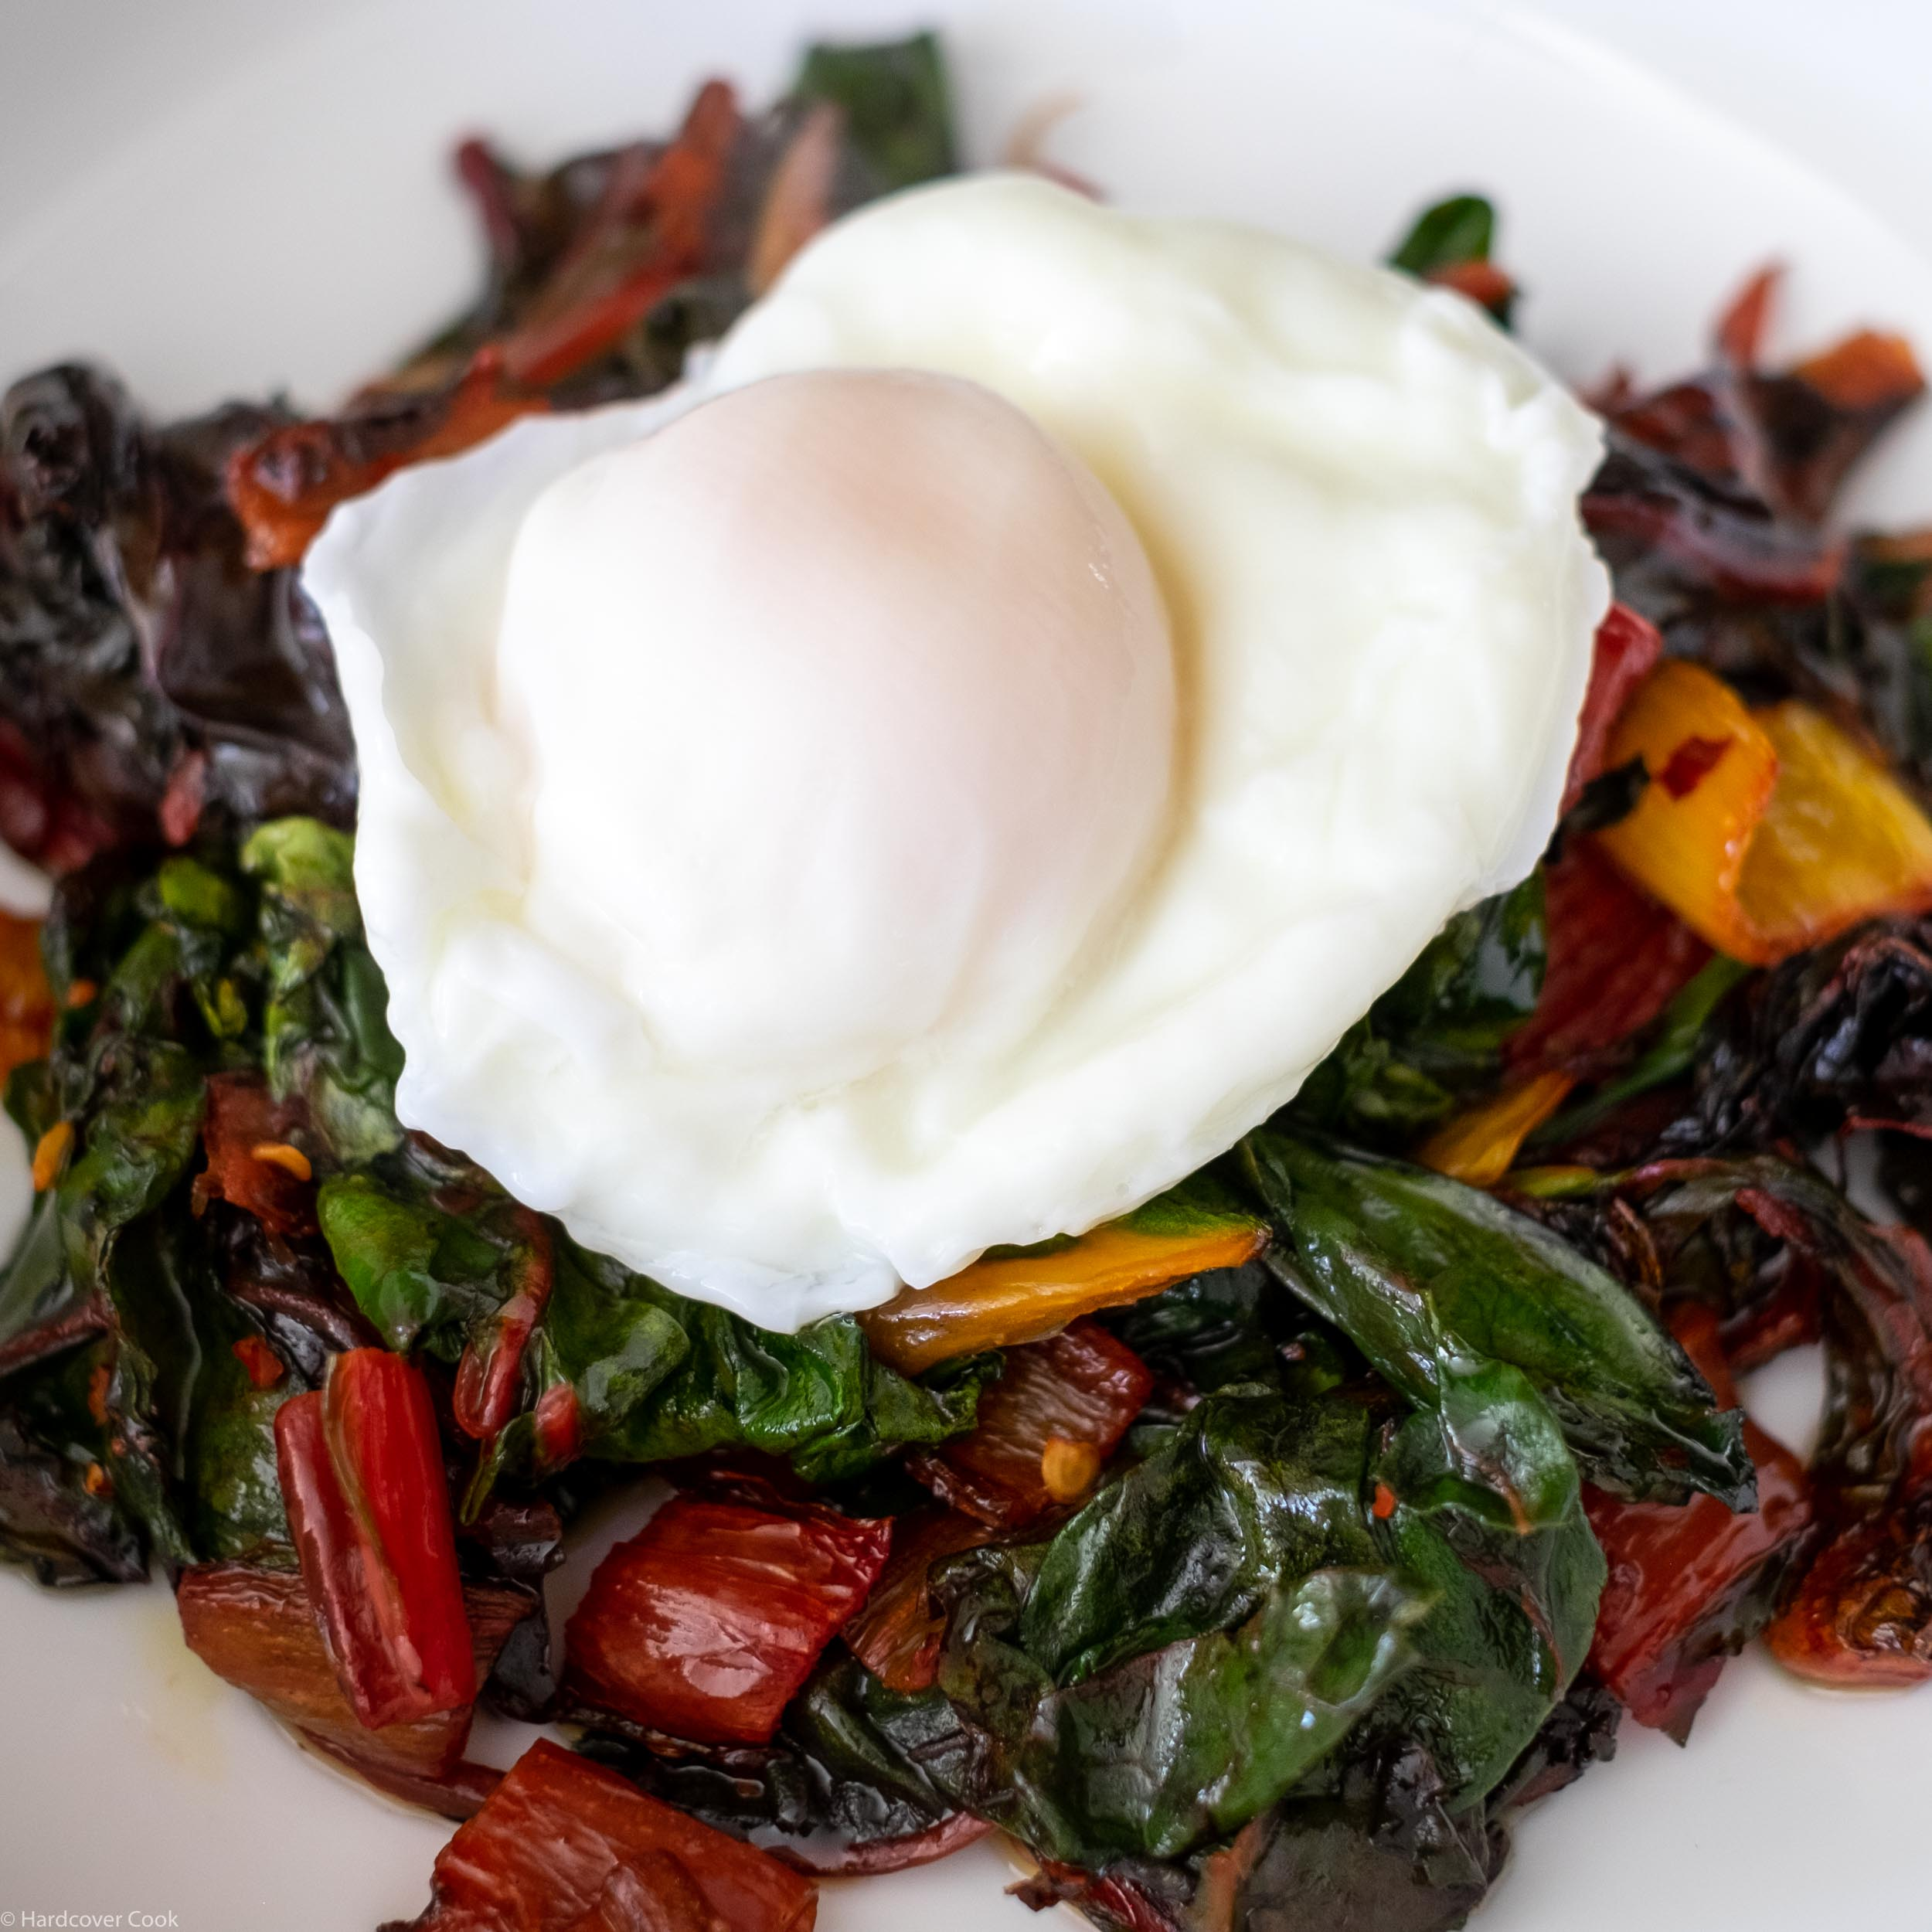 poached-egg-and-silky-braised-greens-from-where-cooking-begins-sq.jpg